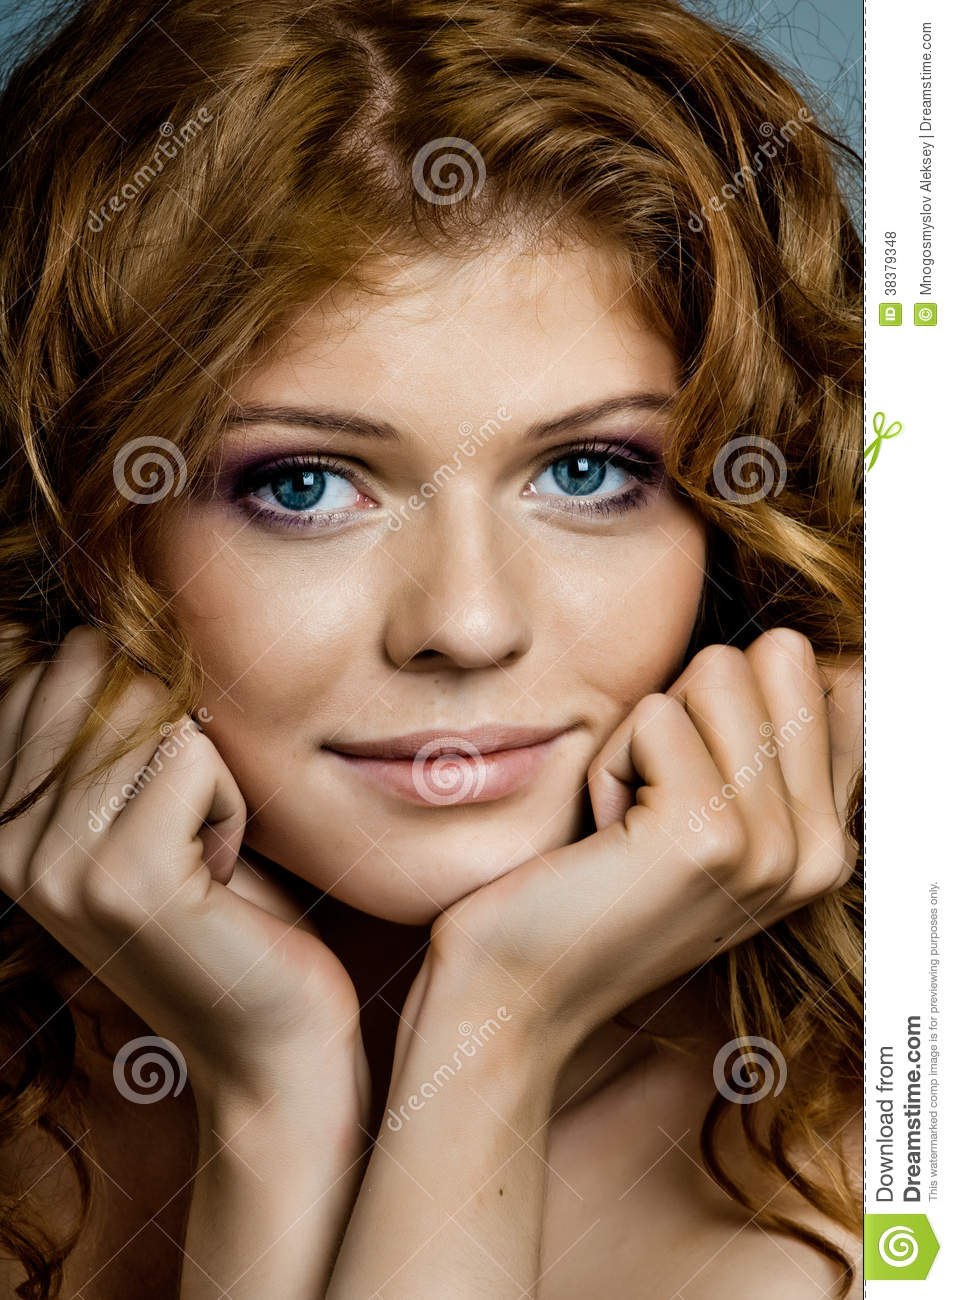 Vertical Portrait Of Pretty 14 Year Old Girl Stock Image: Pretty Woman Royalty Free Stock Photos